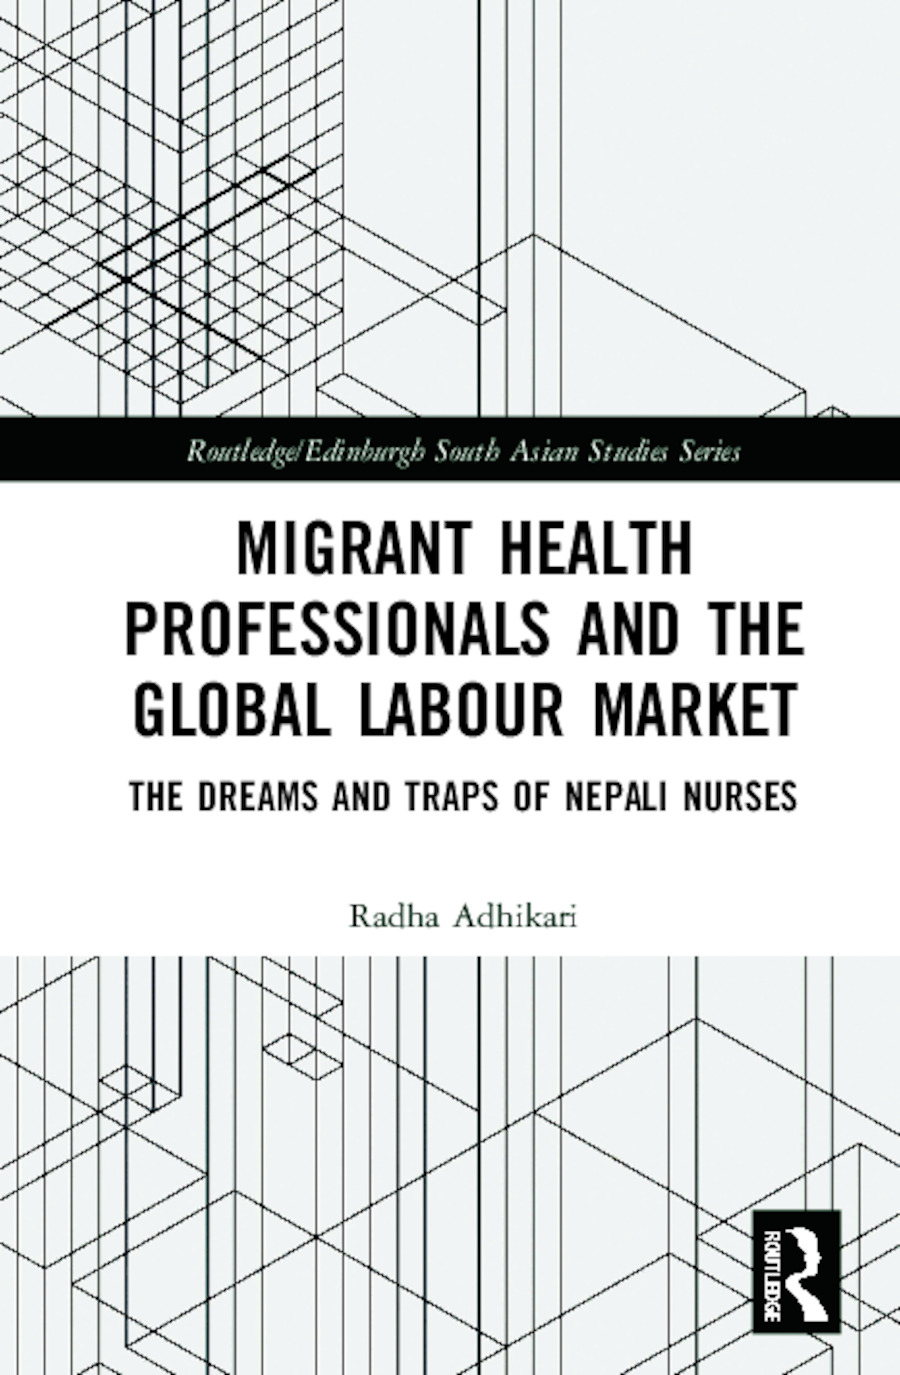 Migrant Health Professionals and the Global Labour Market: The Dreams and Traps of Nepali Nurses book cover